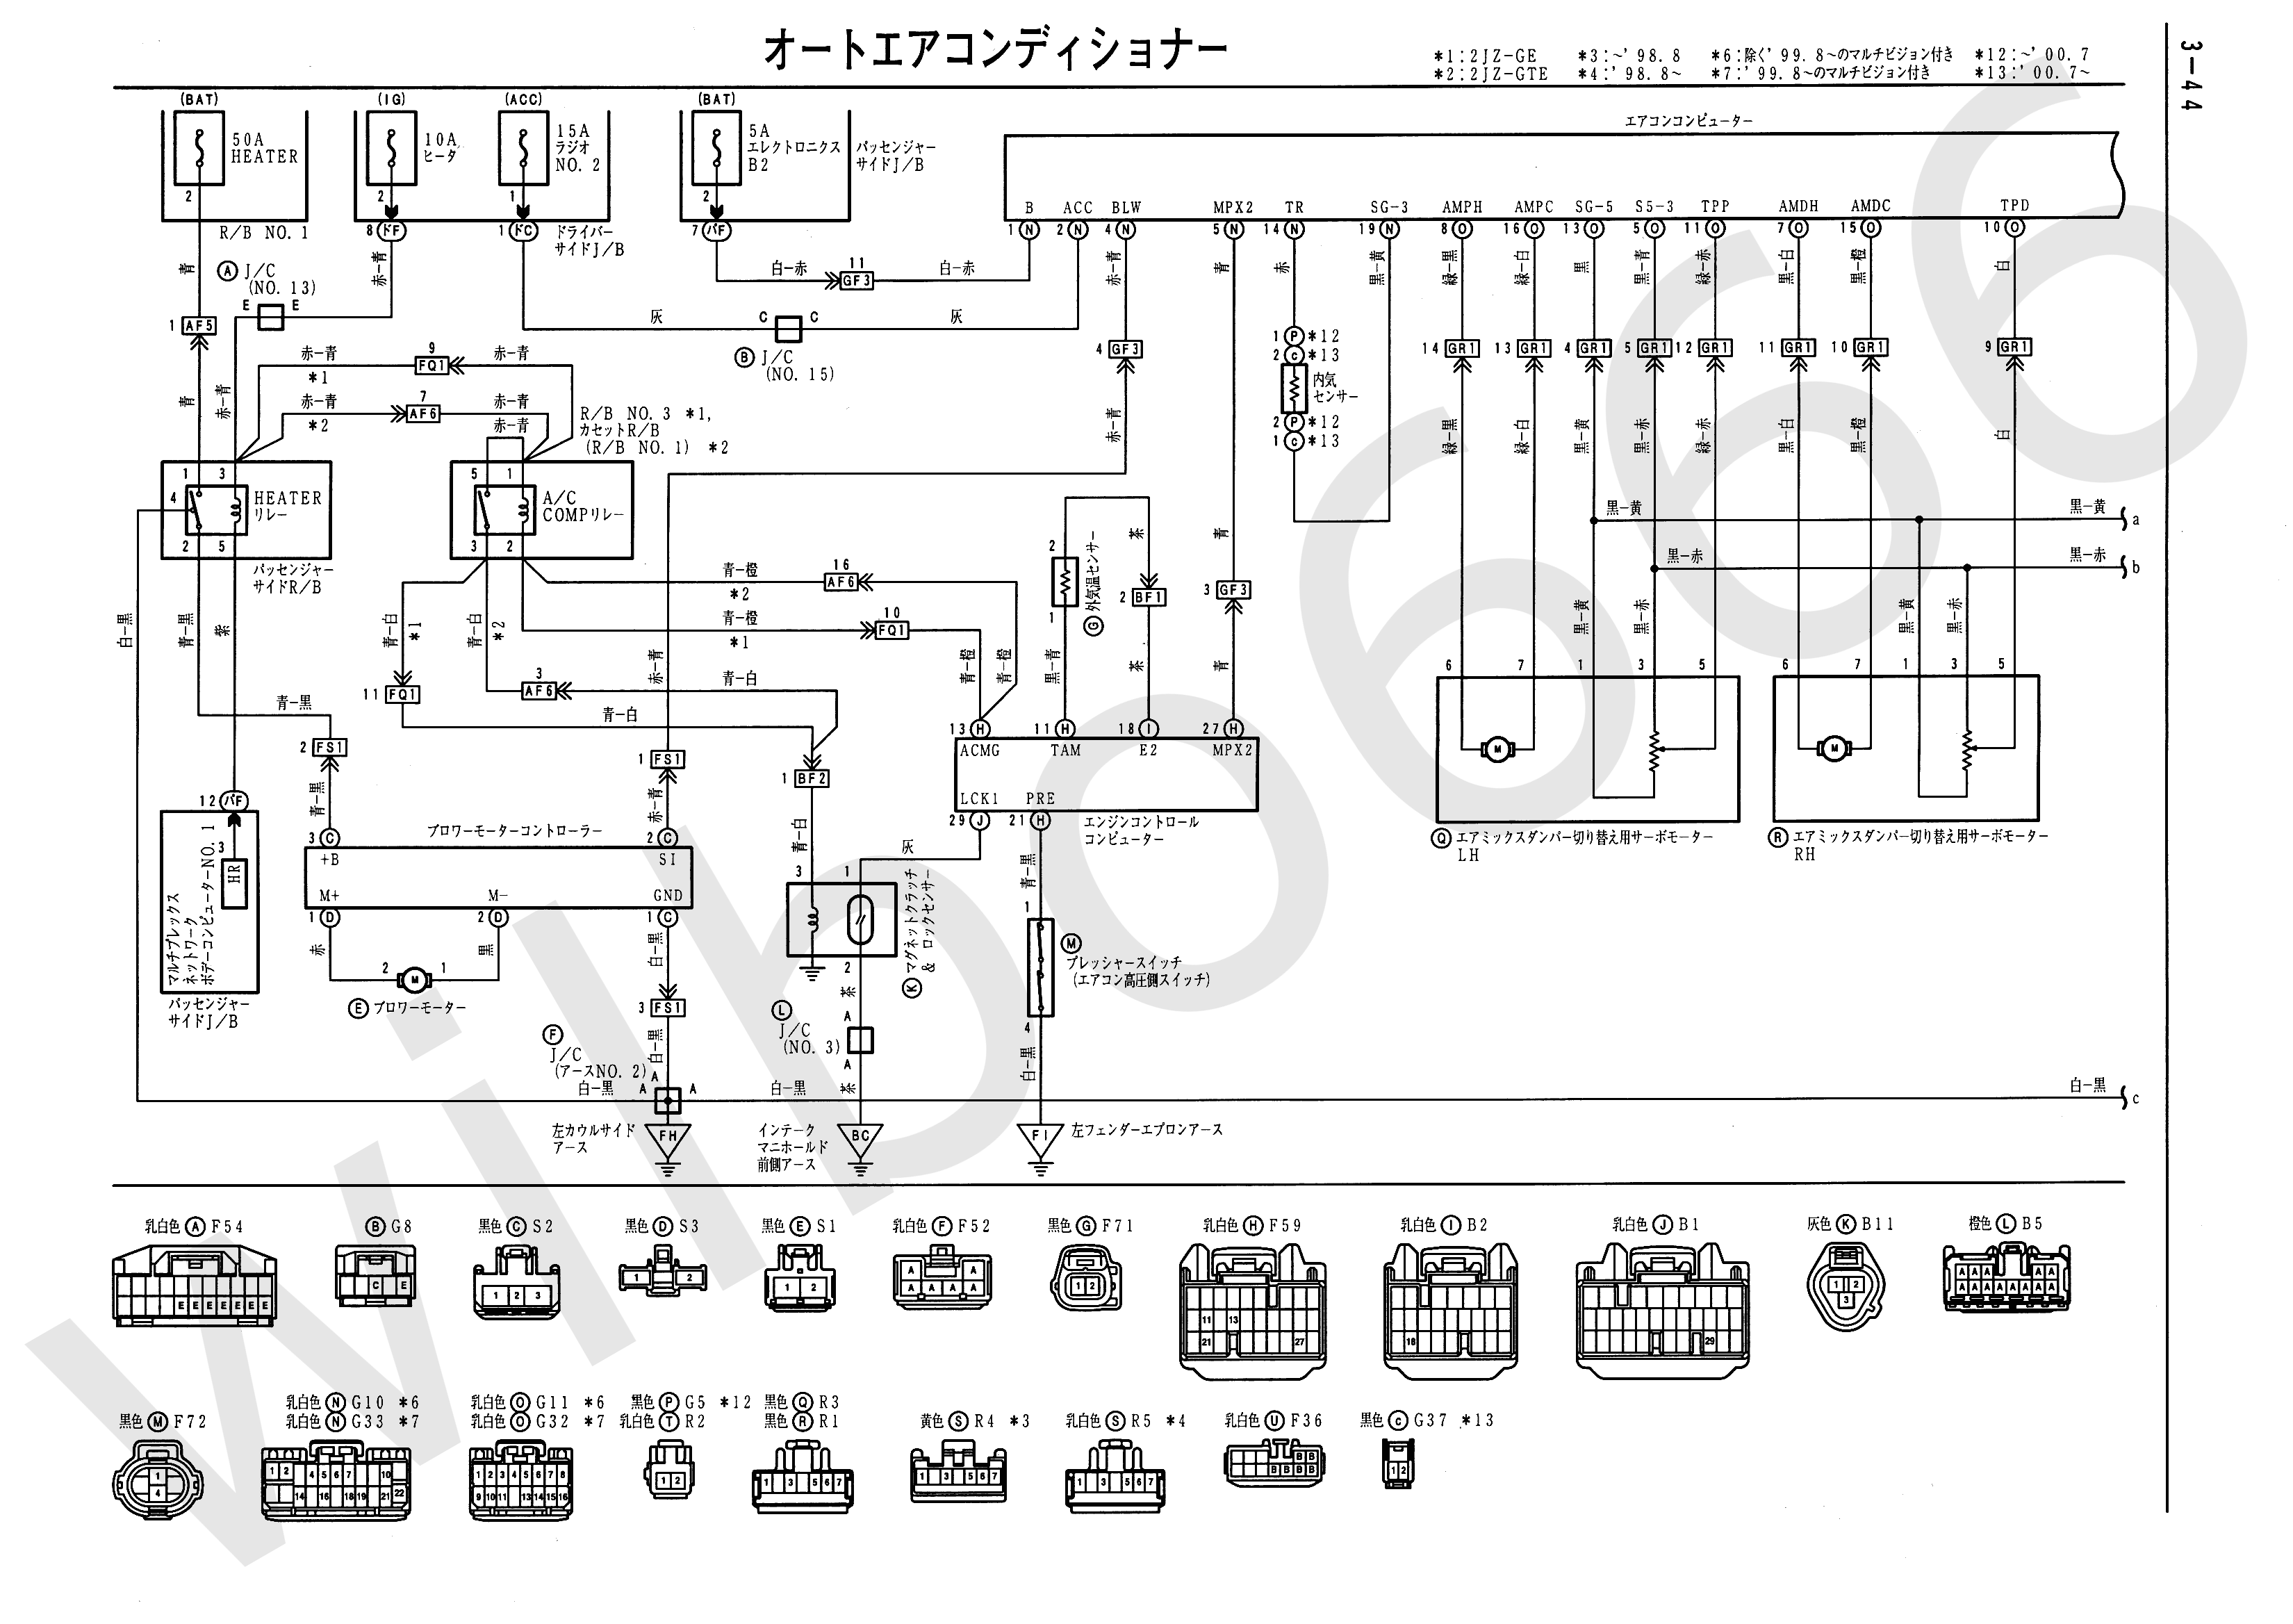 Wilbo666 2jz Gte Vvti Jzs161 Aristo Engine Wiring Tps On 60 Series Schematics Jzs16x Electrical Diagram Book 6748505